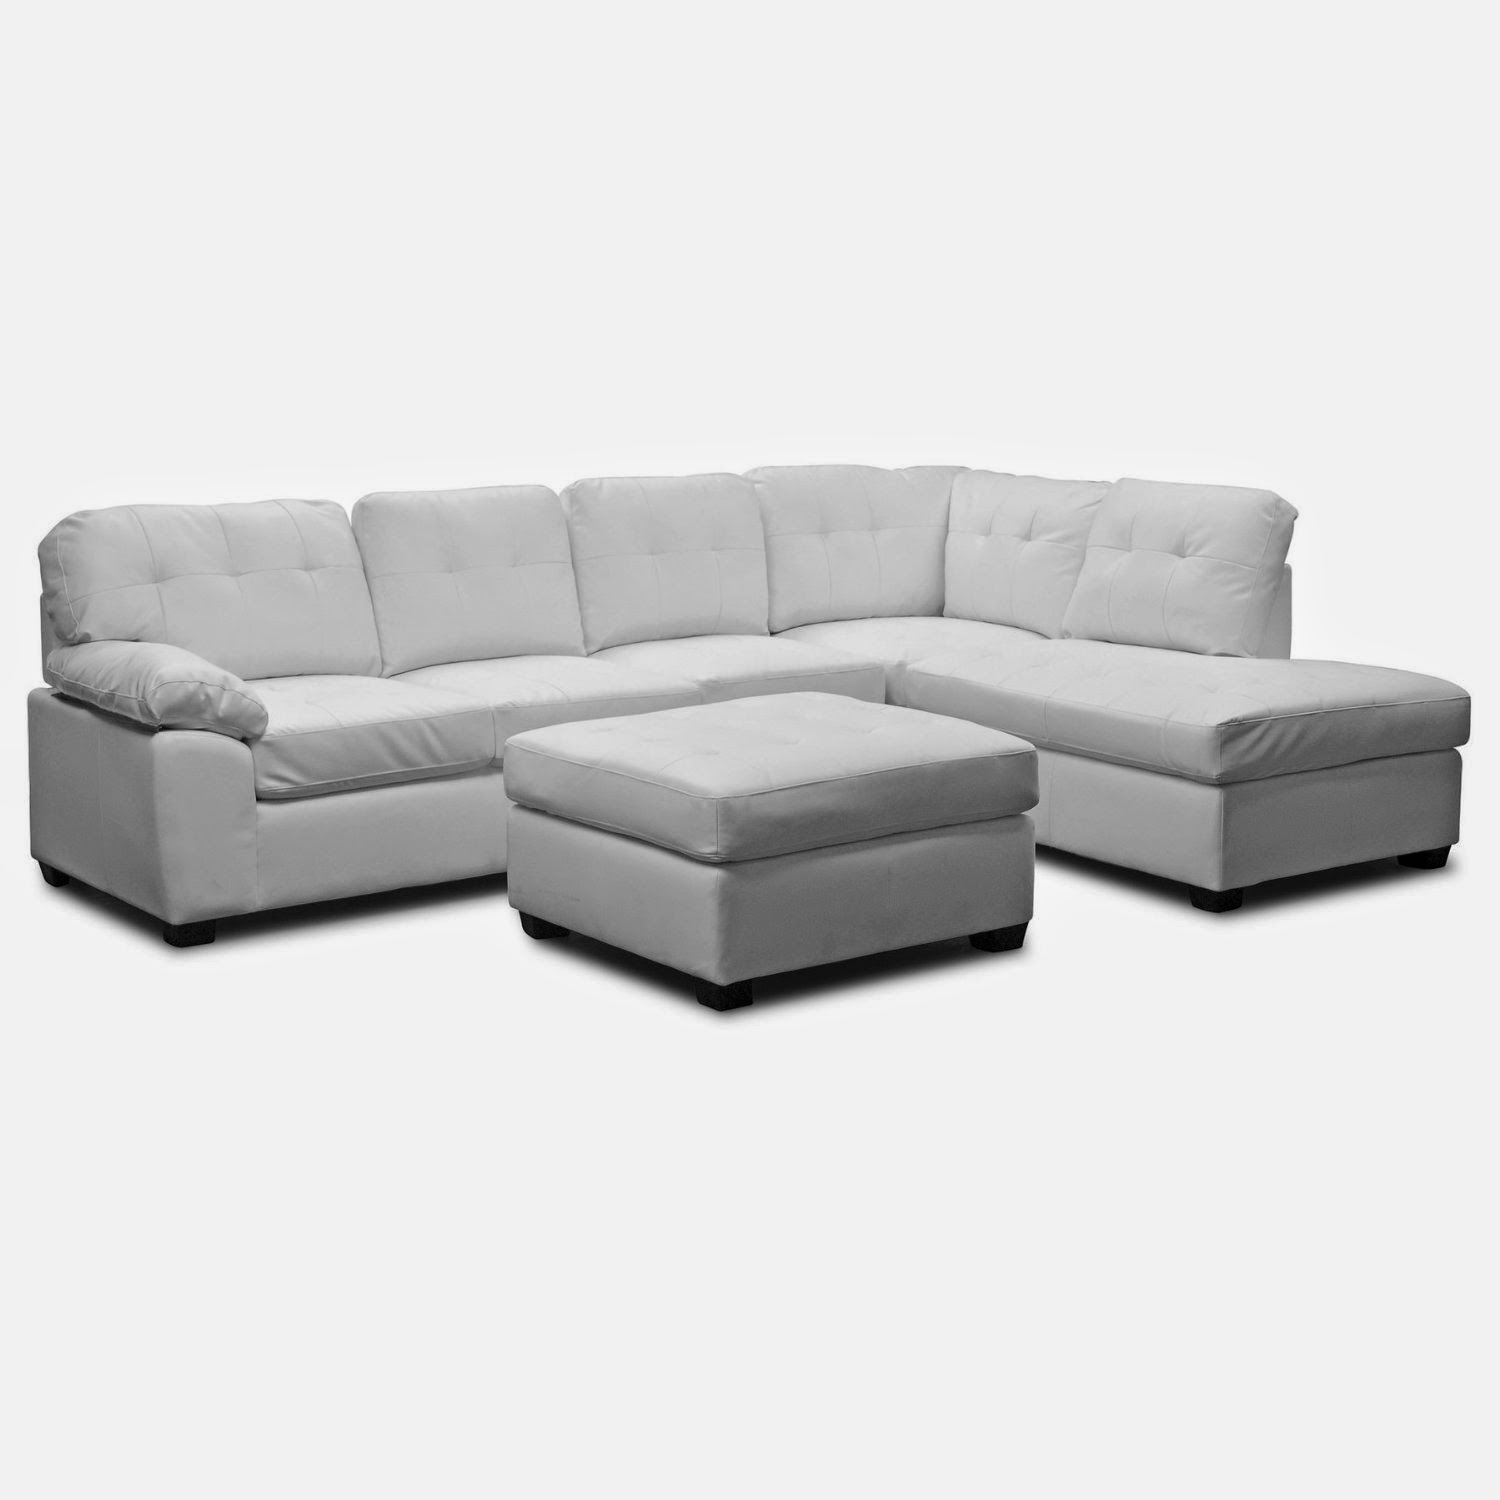 white leather sectional sofa with ottoman plush sofas castle hill oversized couches